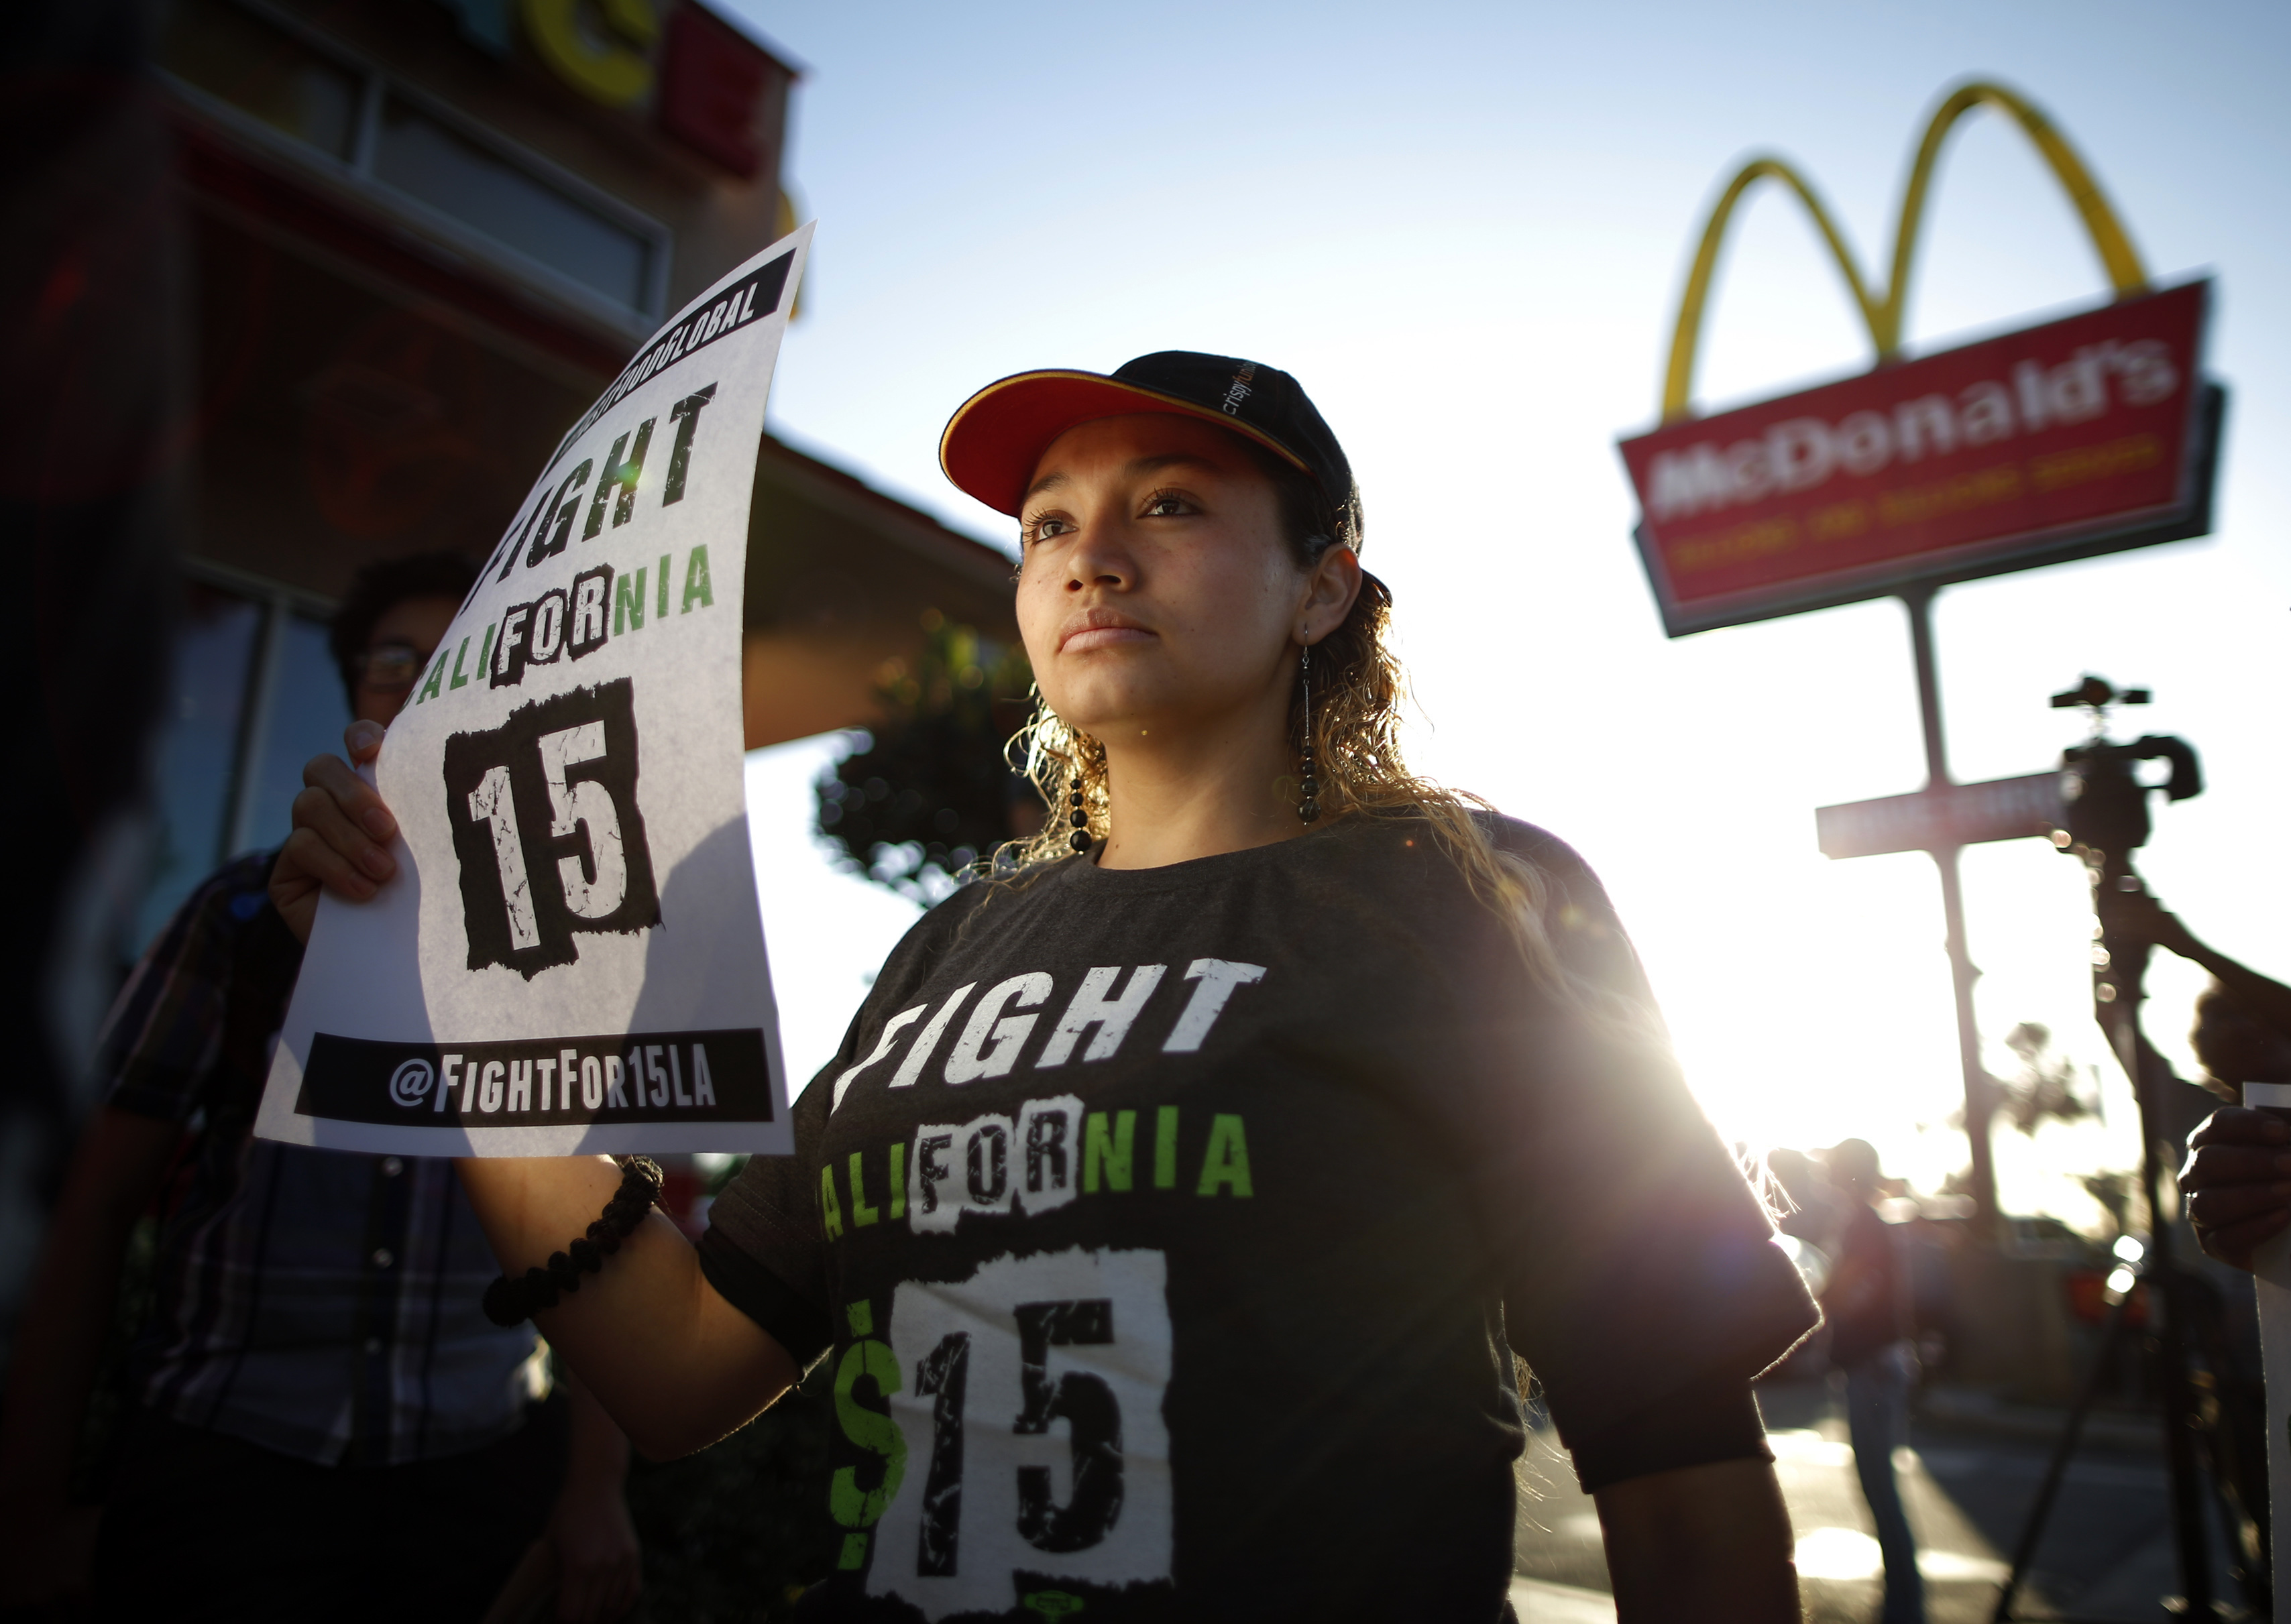 <b>Los Angeles:</b> Demonstrators take part in a protest to demand higher wages for fast-food workers outside McDonald's on May 15, 2014.